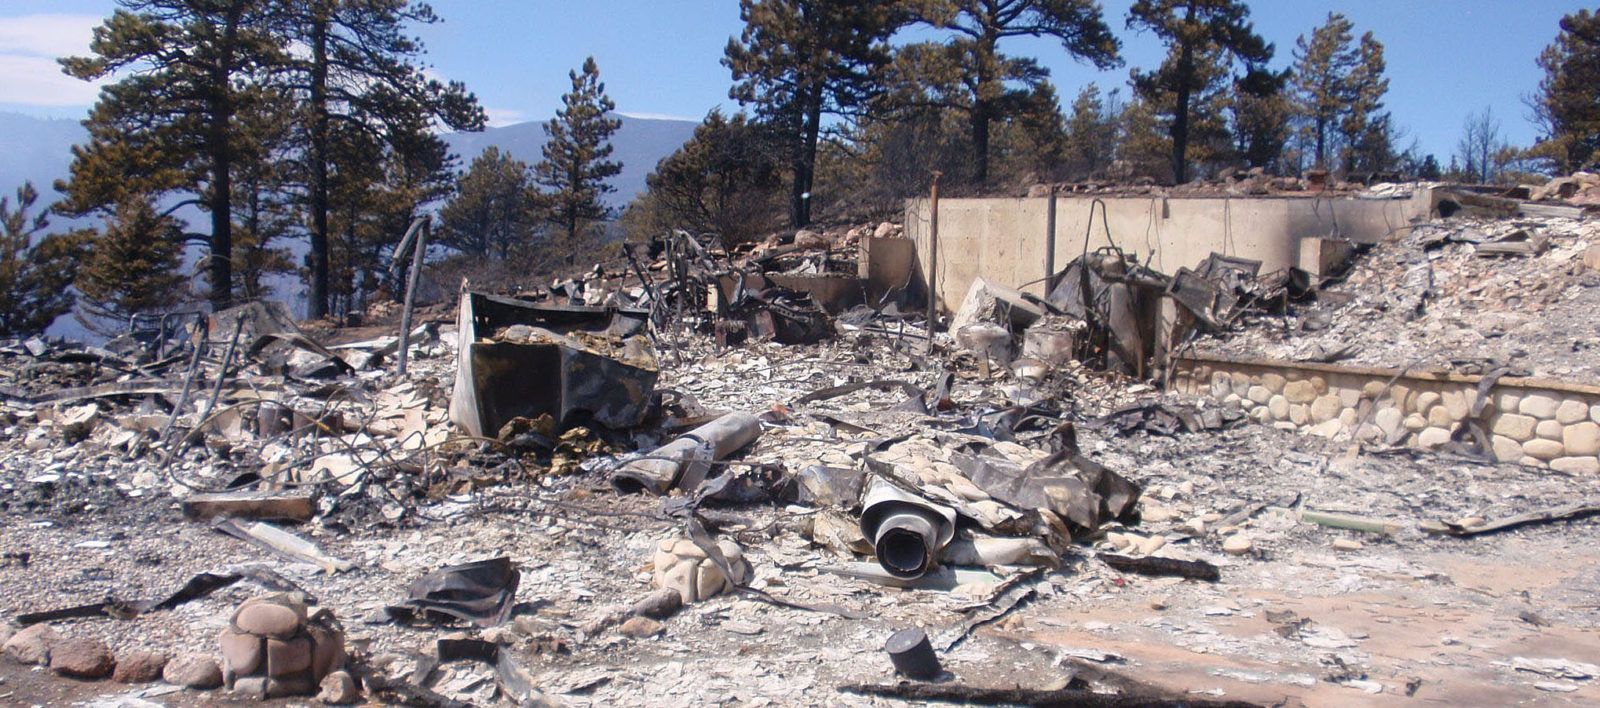 burned home in Colorado foothills